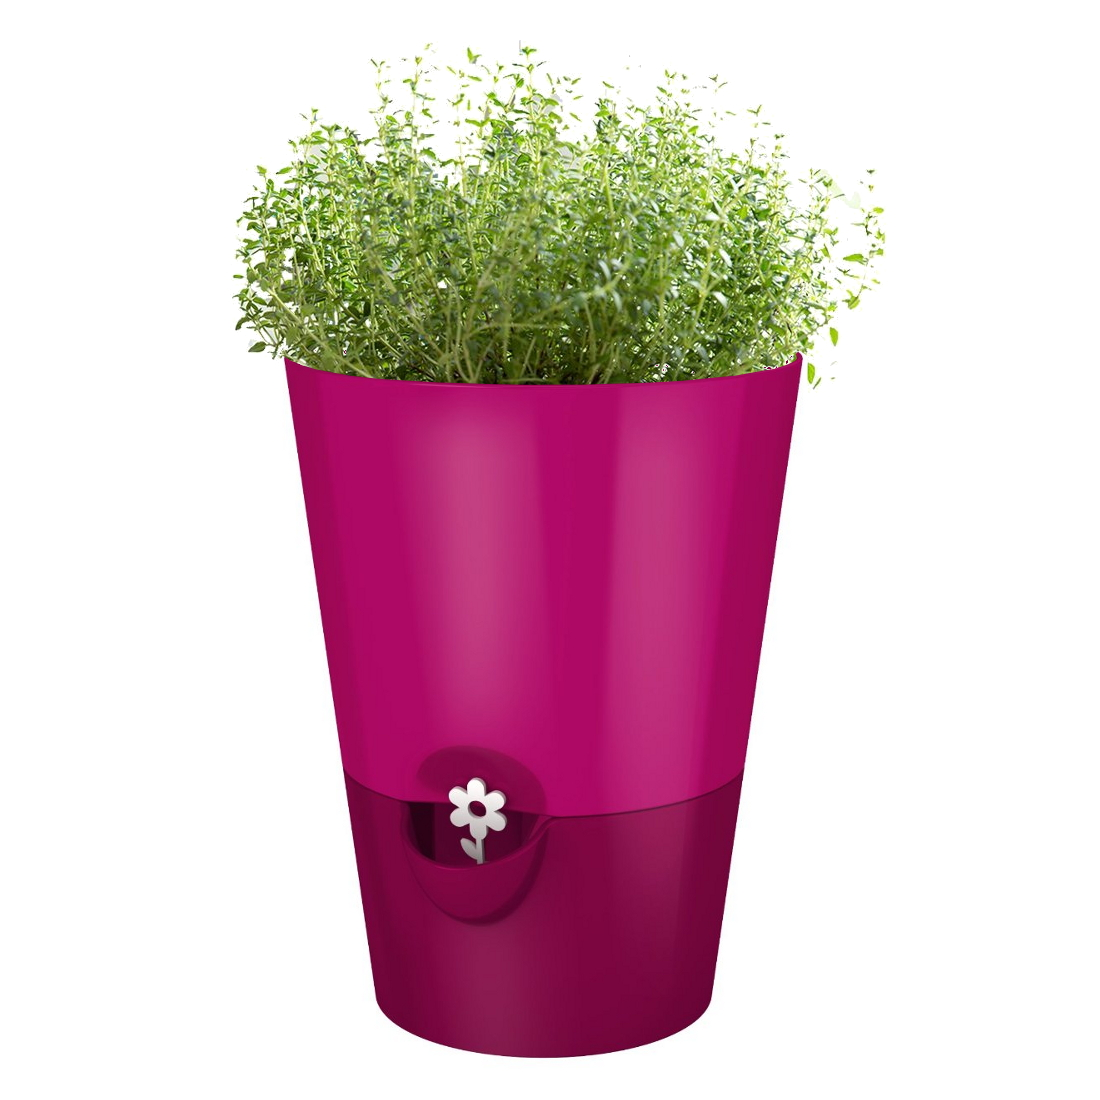 Emsa Smart Planter Pink 6.5 Inch Herb Grower